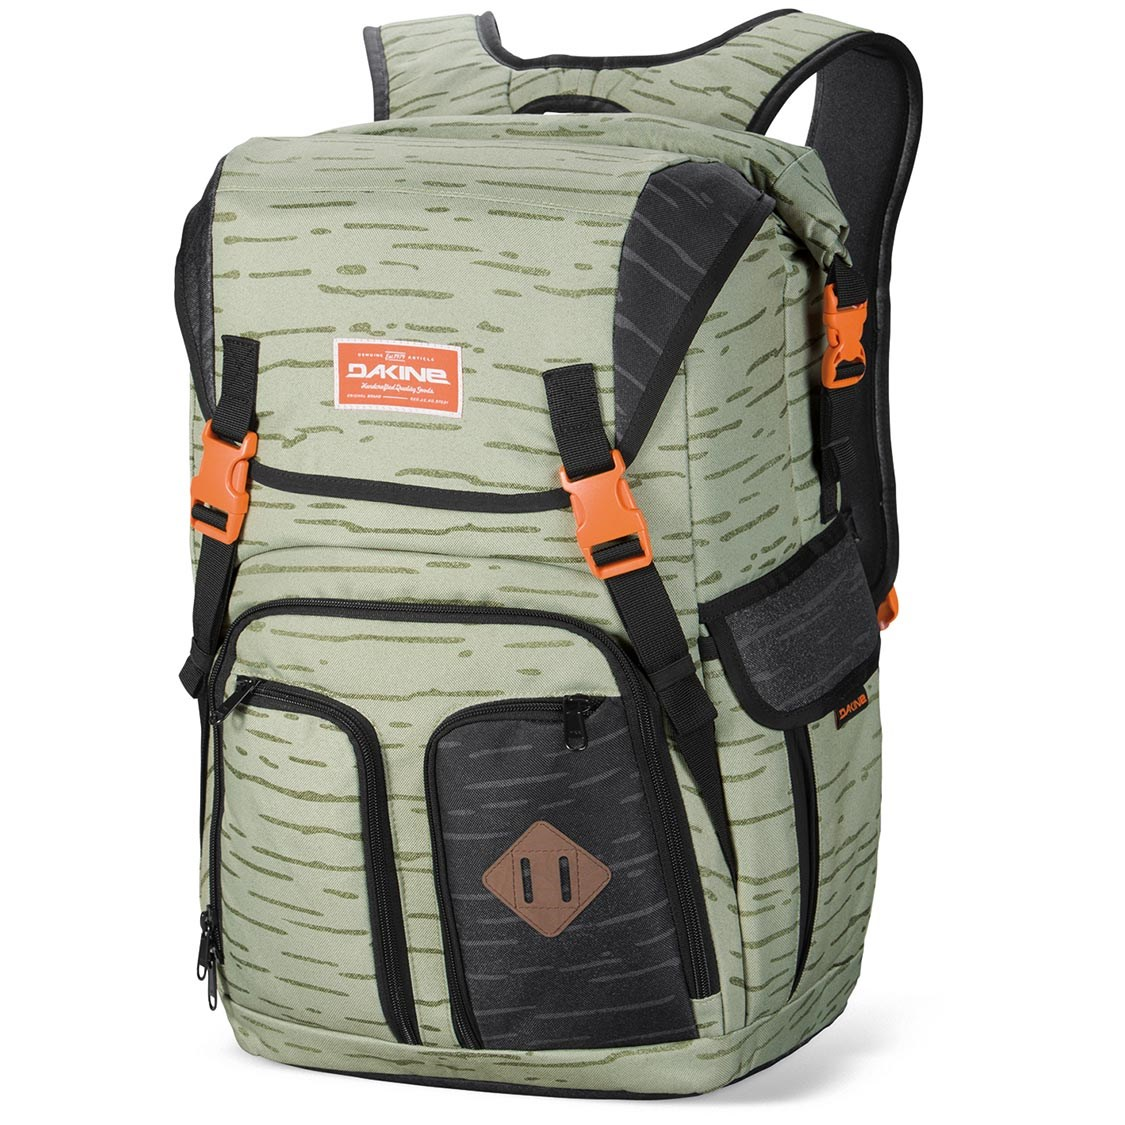 DaKine Jetty 32L Wet/Dry Backpack | evo outlet